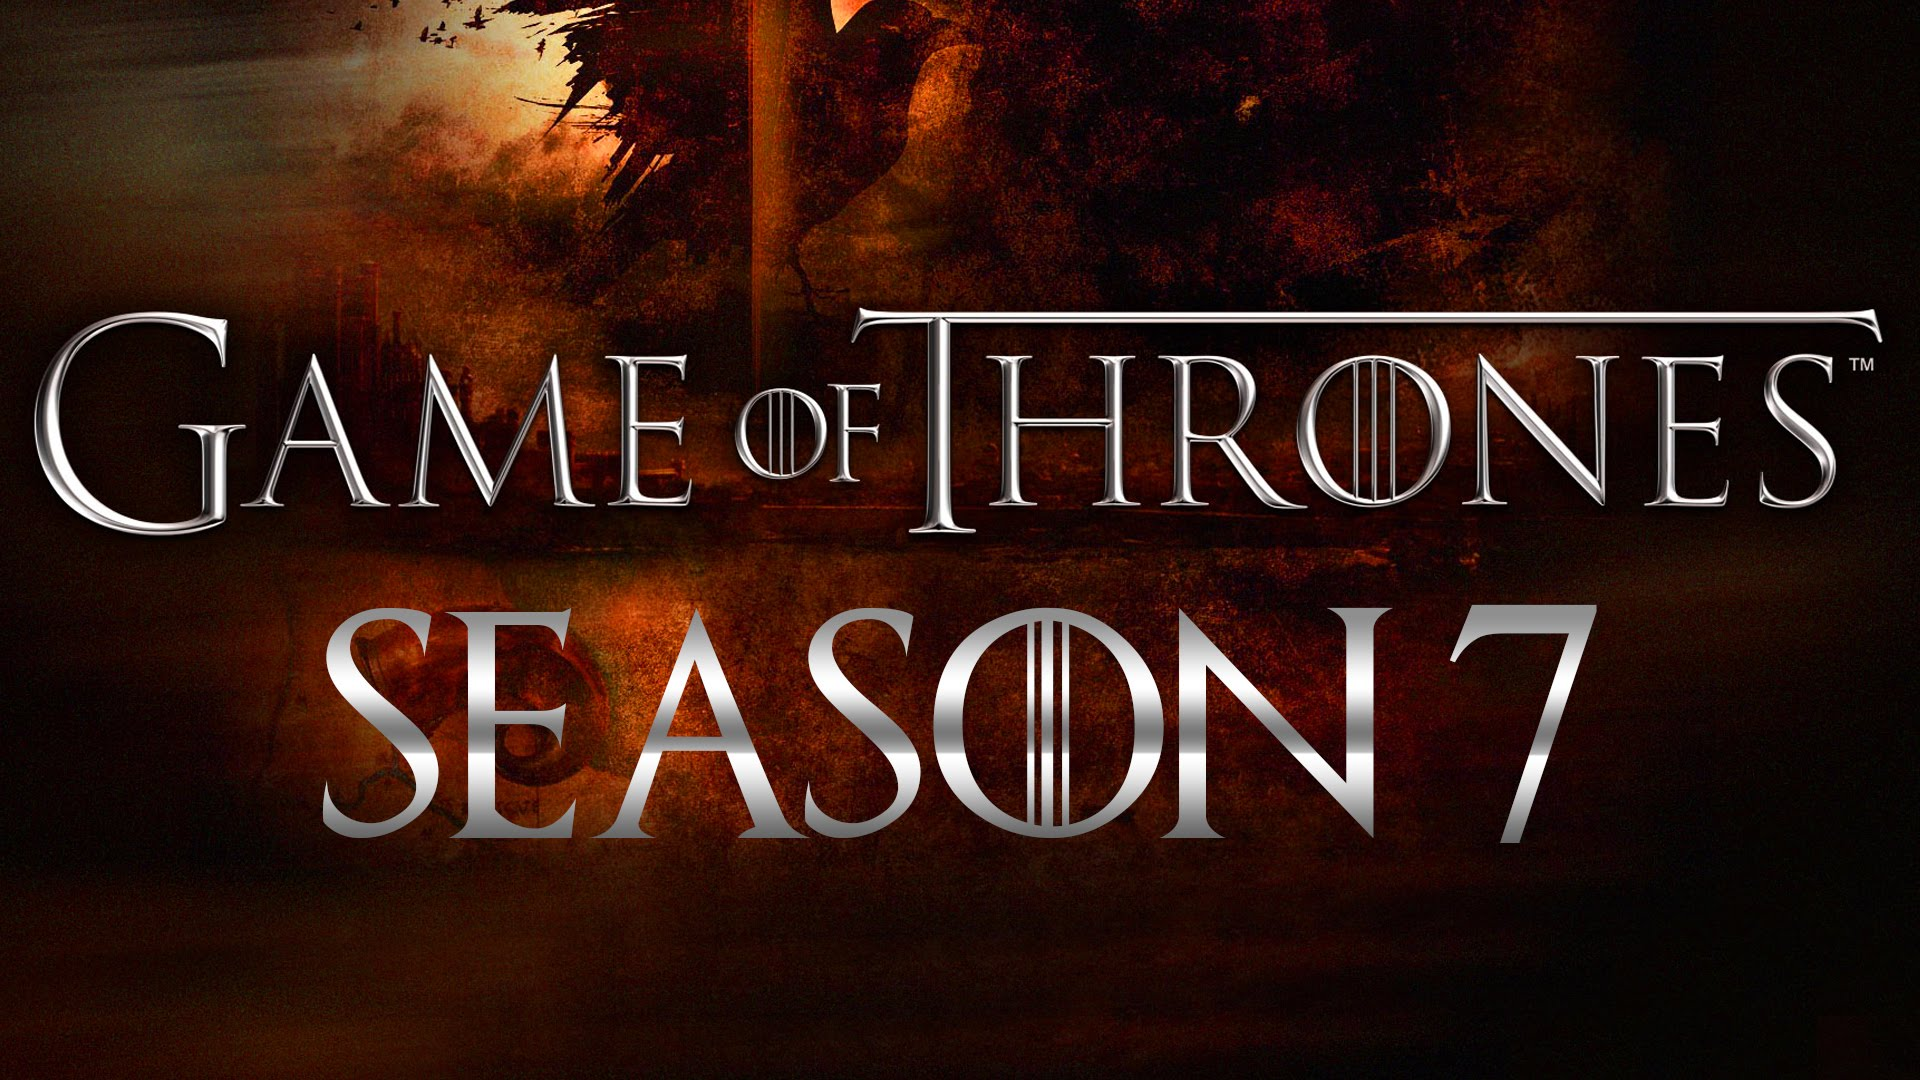 Game of Thrones S04E01 – Two Swords, serial online subtitrat